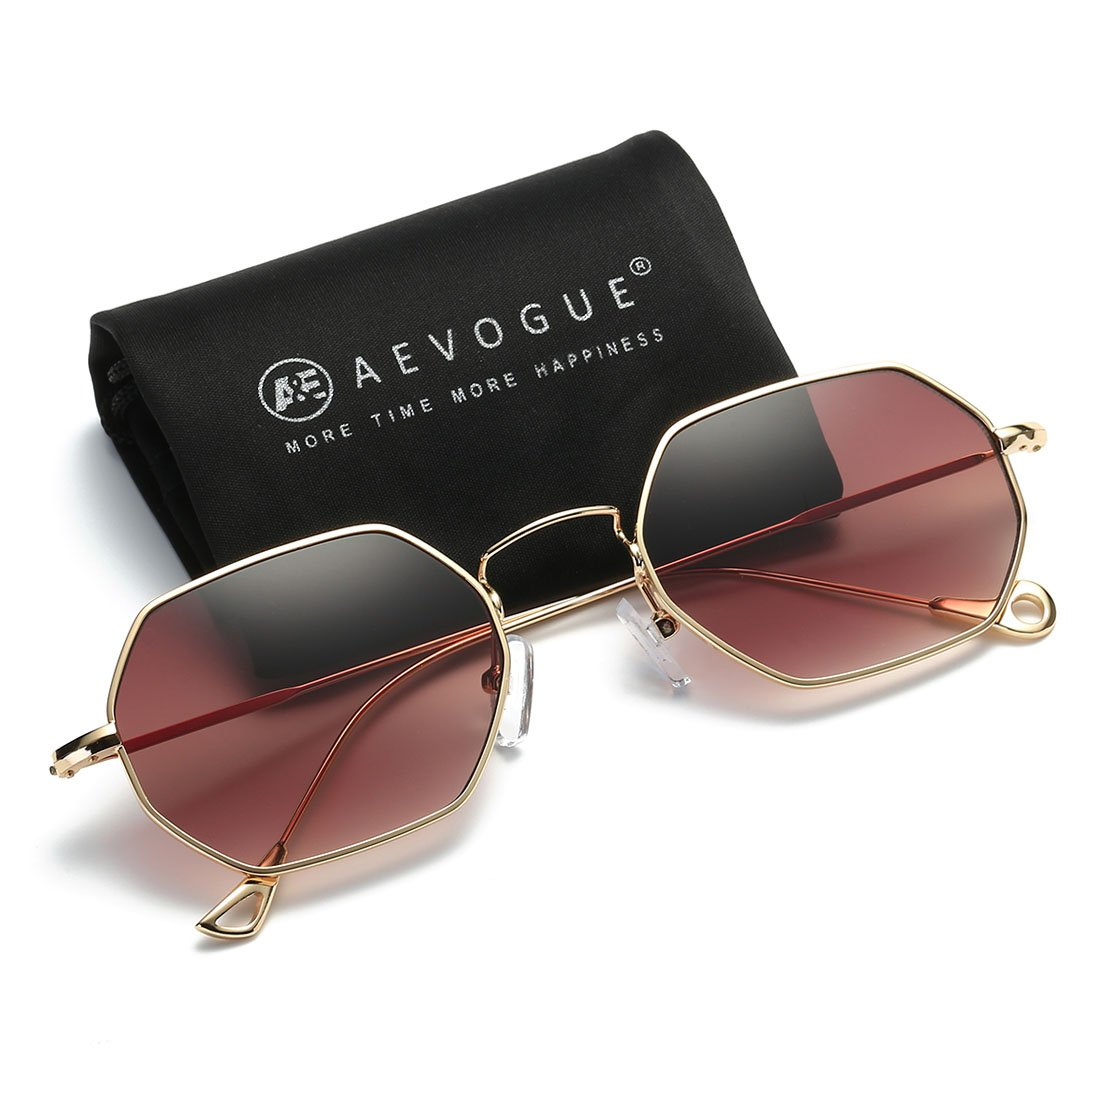 AEVOGUE Unisex Sunglasses Small Metal Frame Asymmetry Temple AE0520 (Gold&Brown, 56) by AEVOGUE